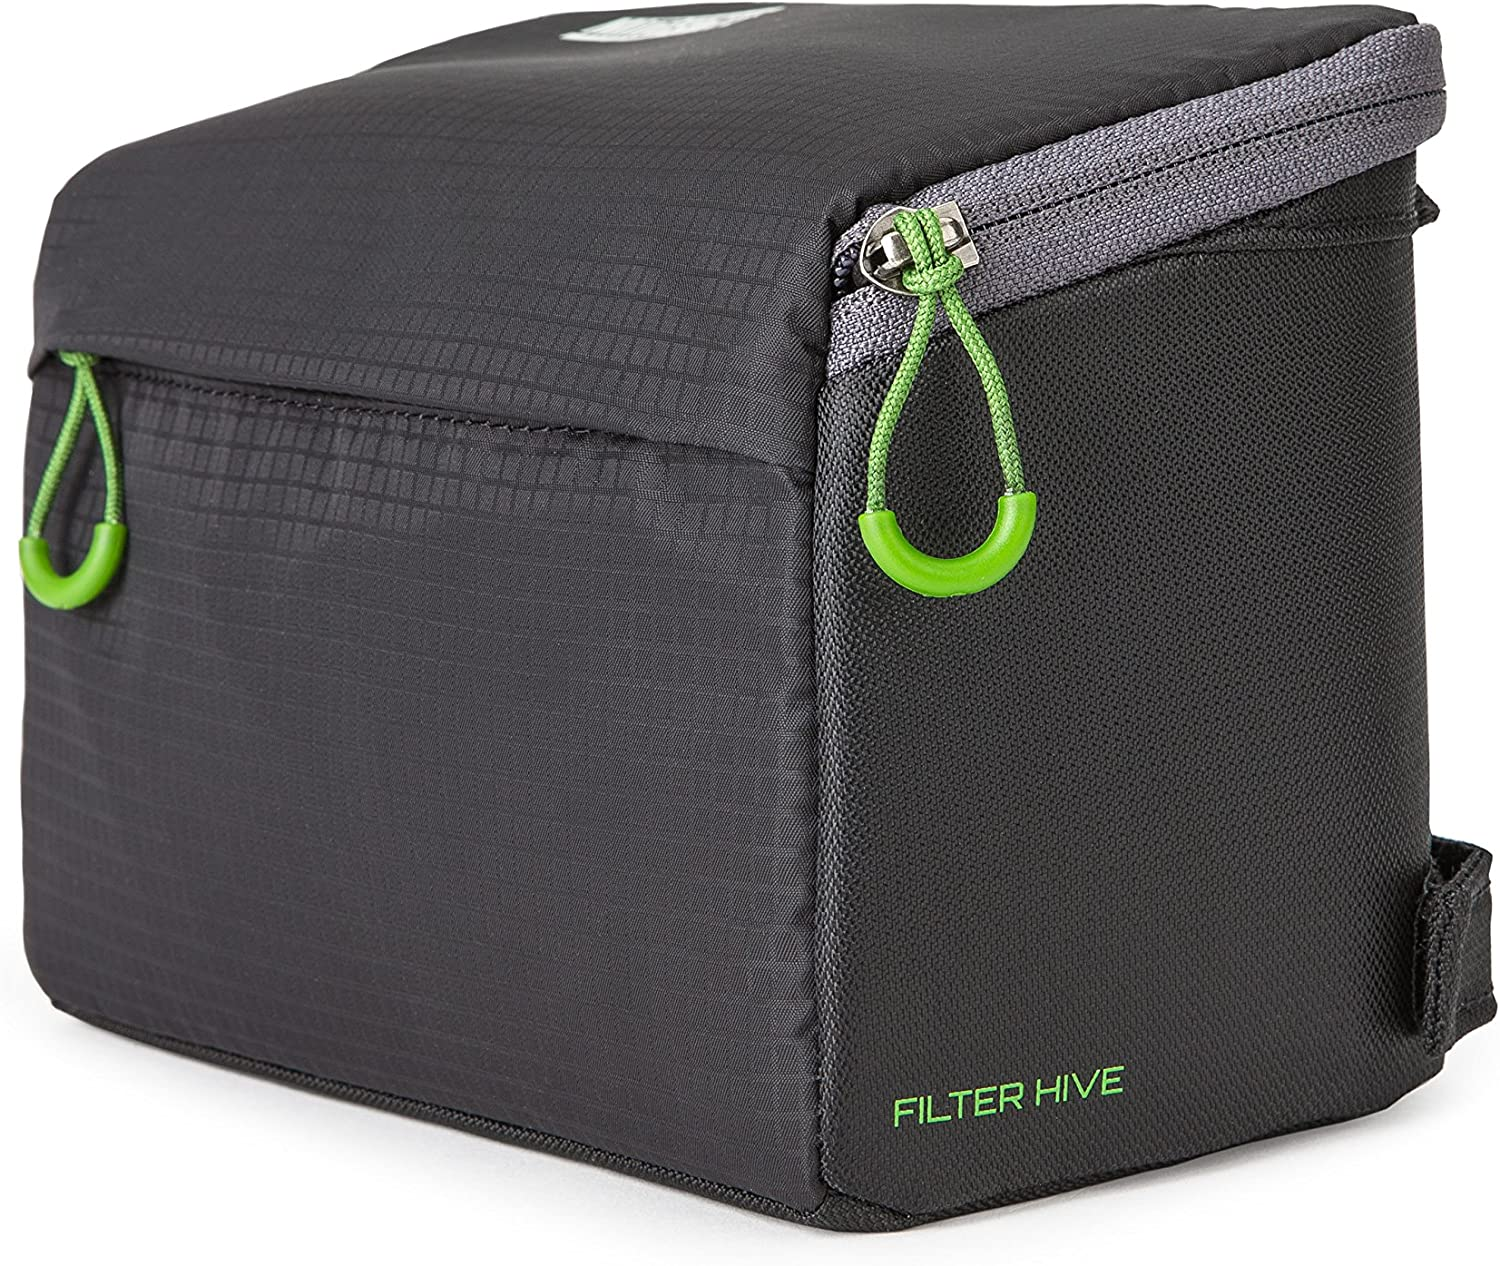 MindShift Gear Filter Hive Storage Case